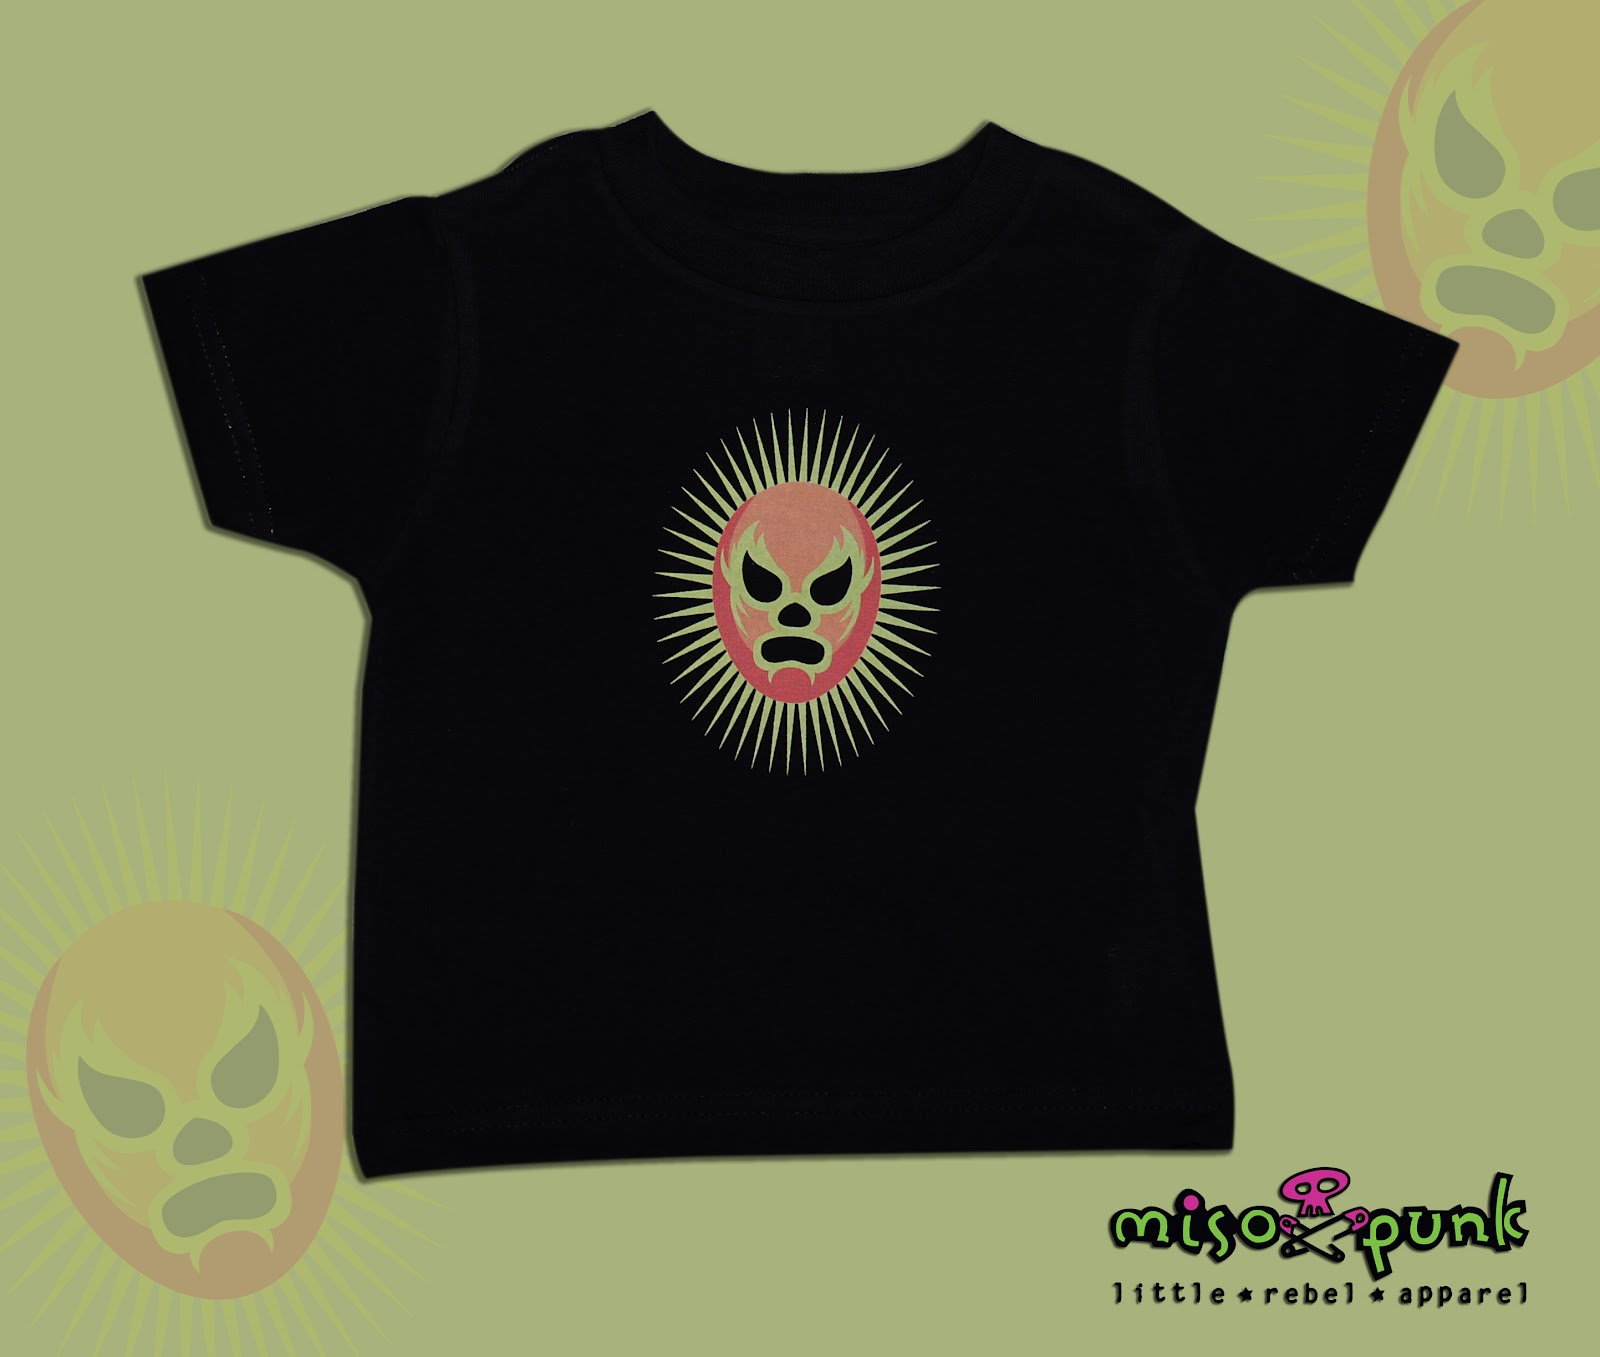 Punk Baby Clothing: Luchador baby!